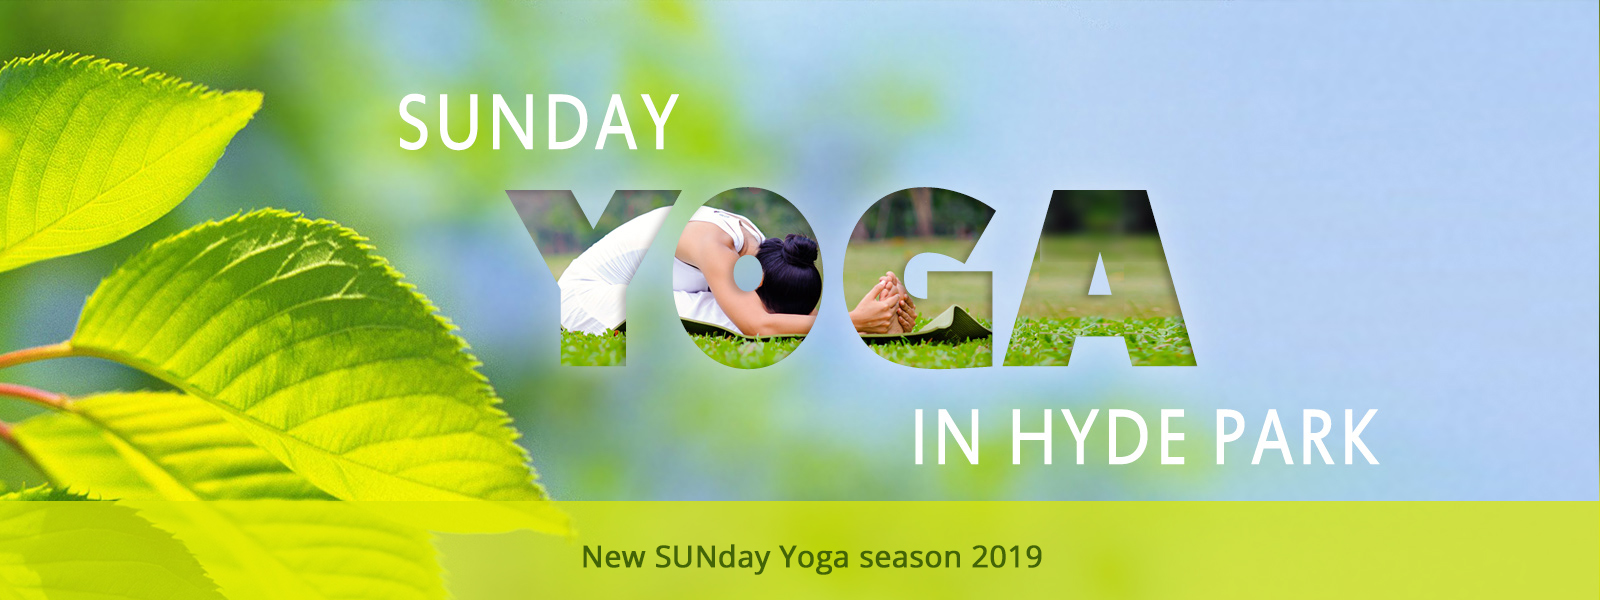 Sunday Yoga Classes in Hyde Park